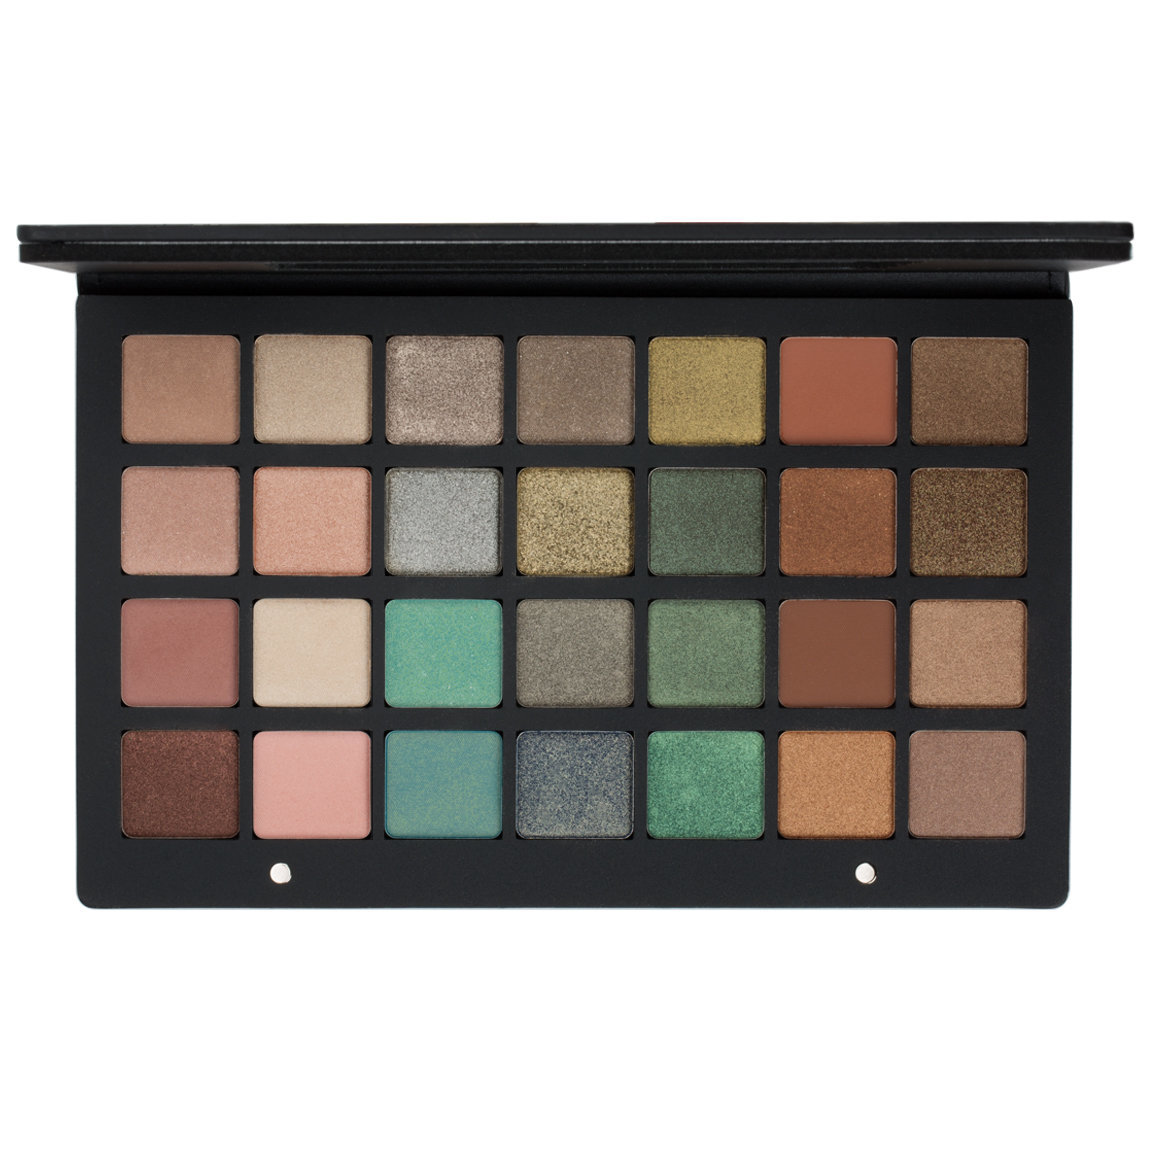 Natasha Denona Eyeshadow Palette 28 Green Brown product smear.